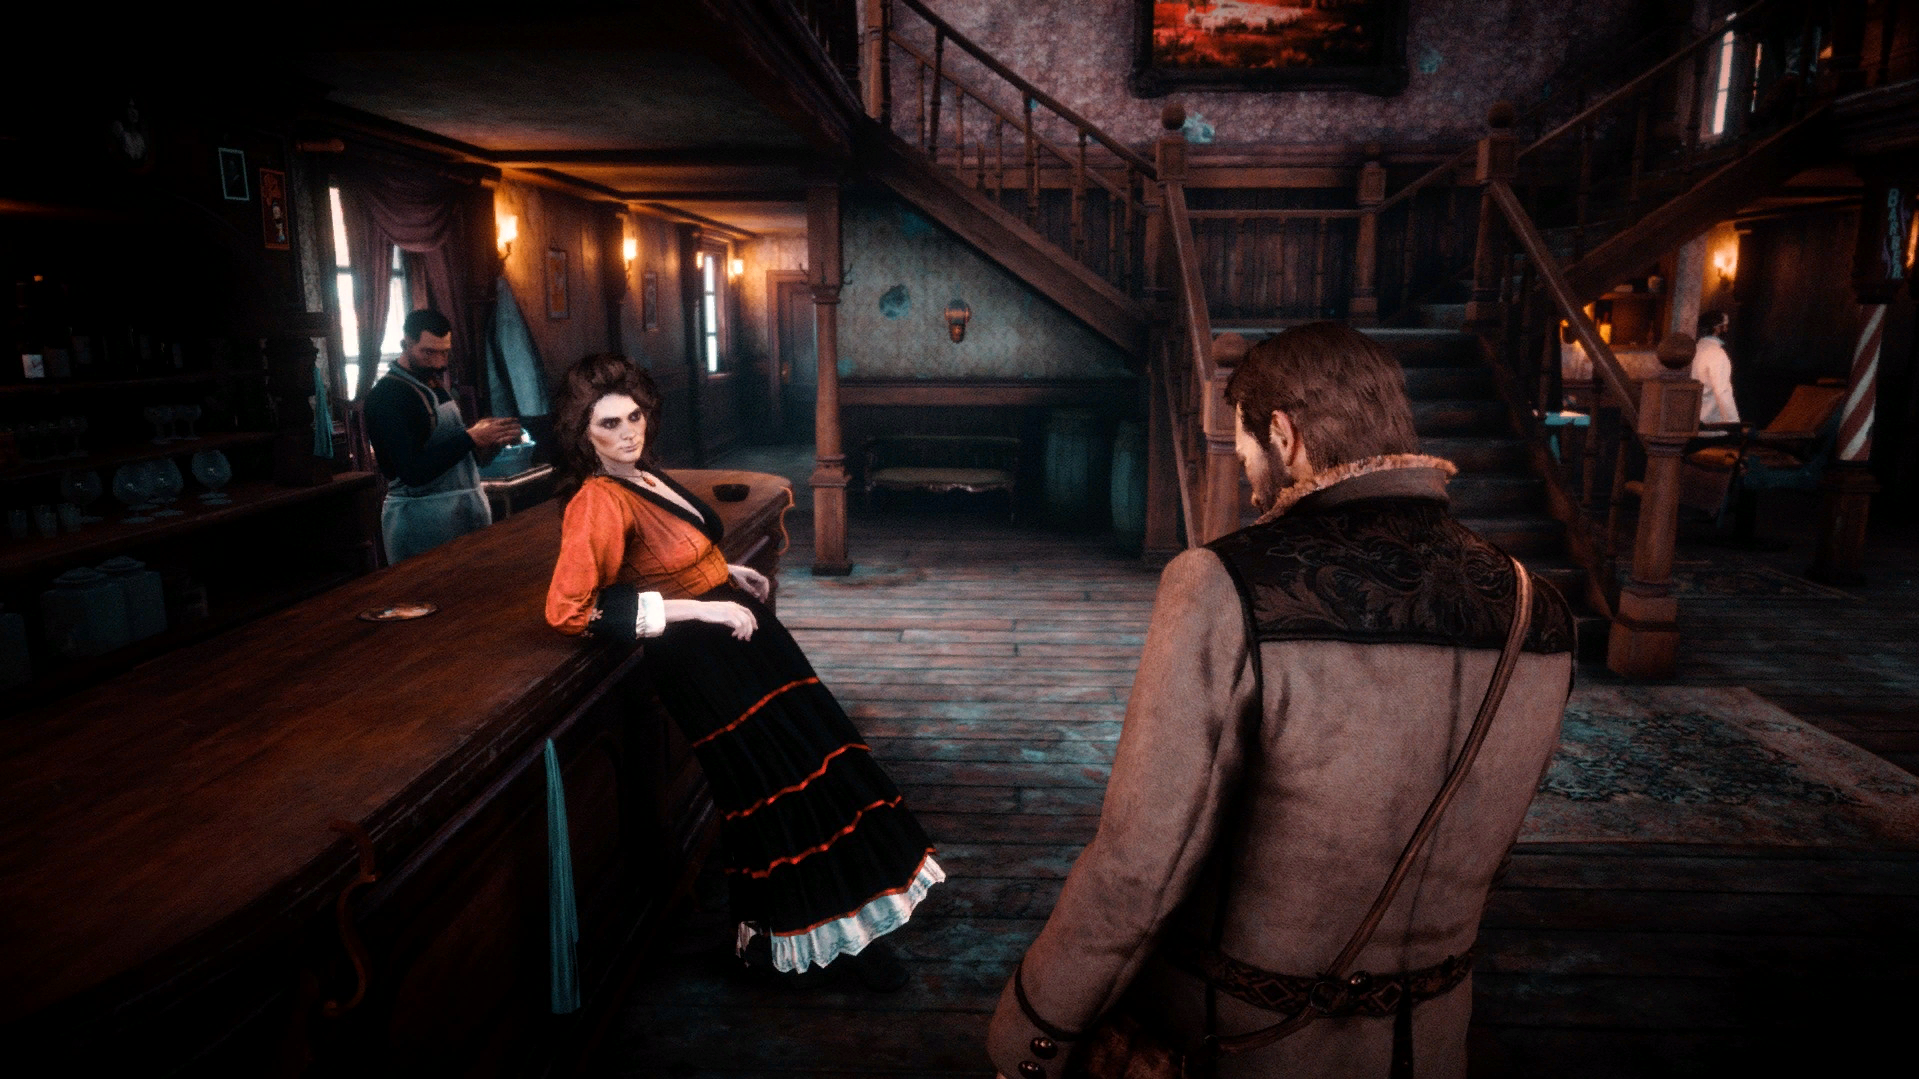 Screen from modded Red Dead Redemption 2 showing Arthur Morgan being propositioned by a prostitute.